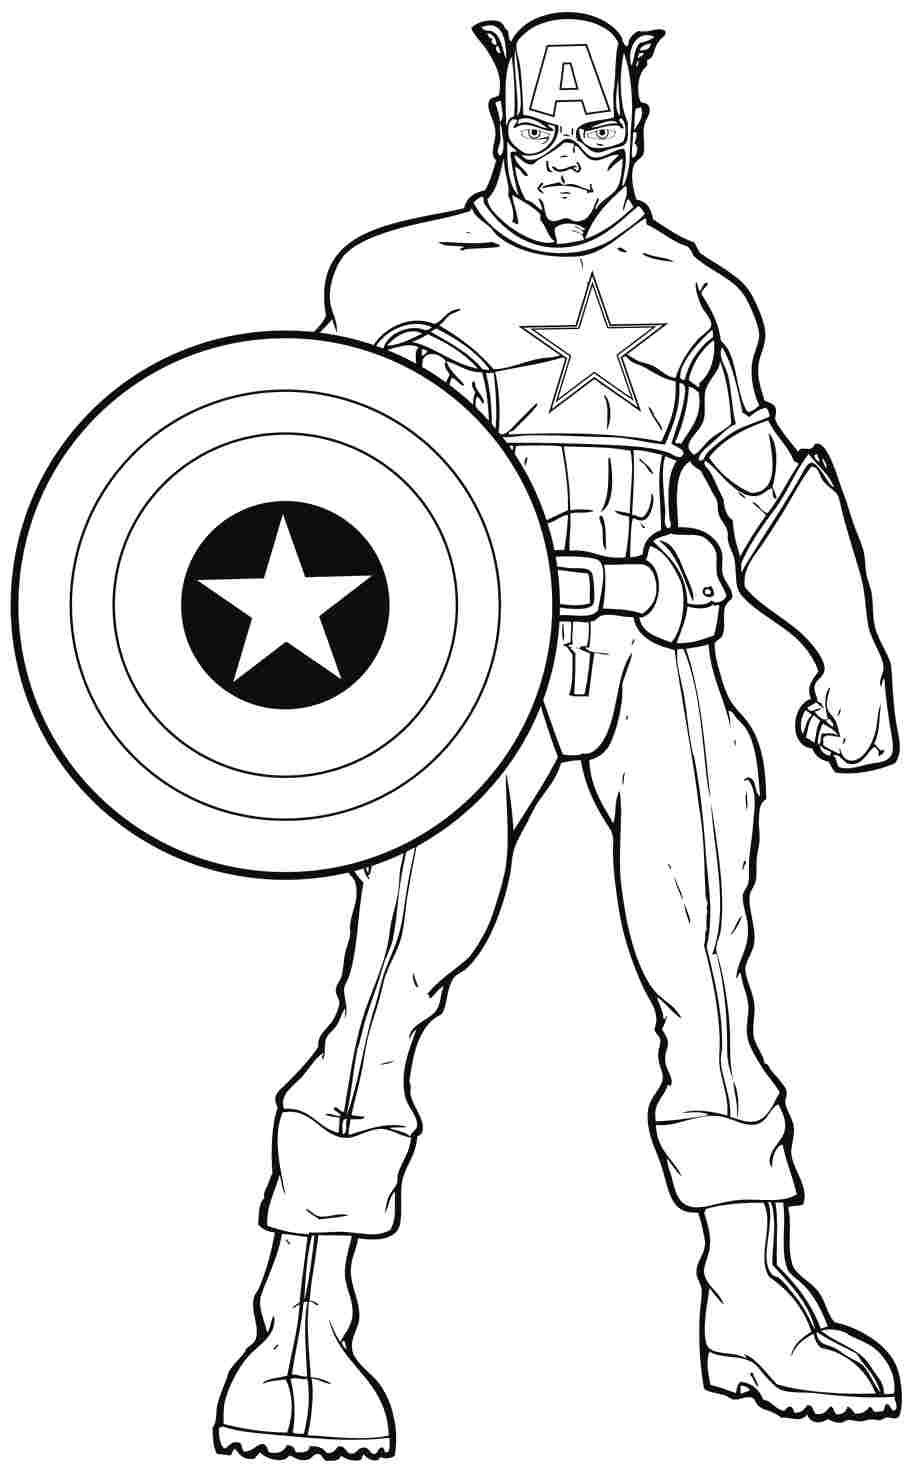 Superhero Printable Coloring Pages Elegant Coloring Pages Flash Superhero Az Colorin Superhero Coloring Superhero Coloring Pages Captain America Coloring Pages